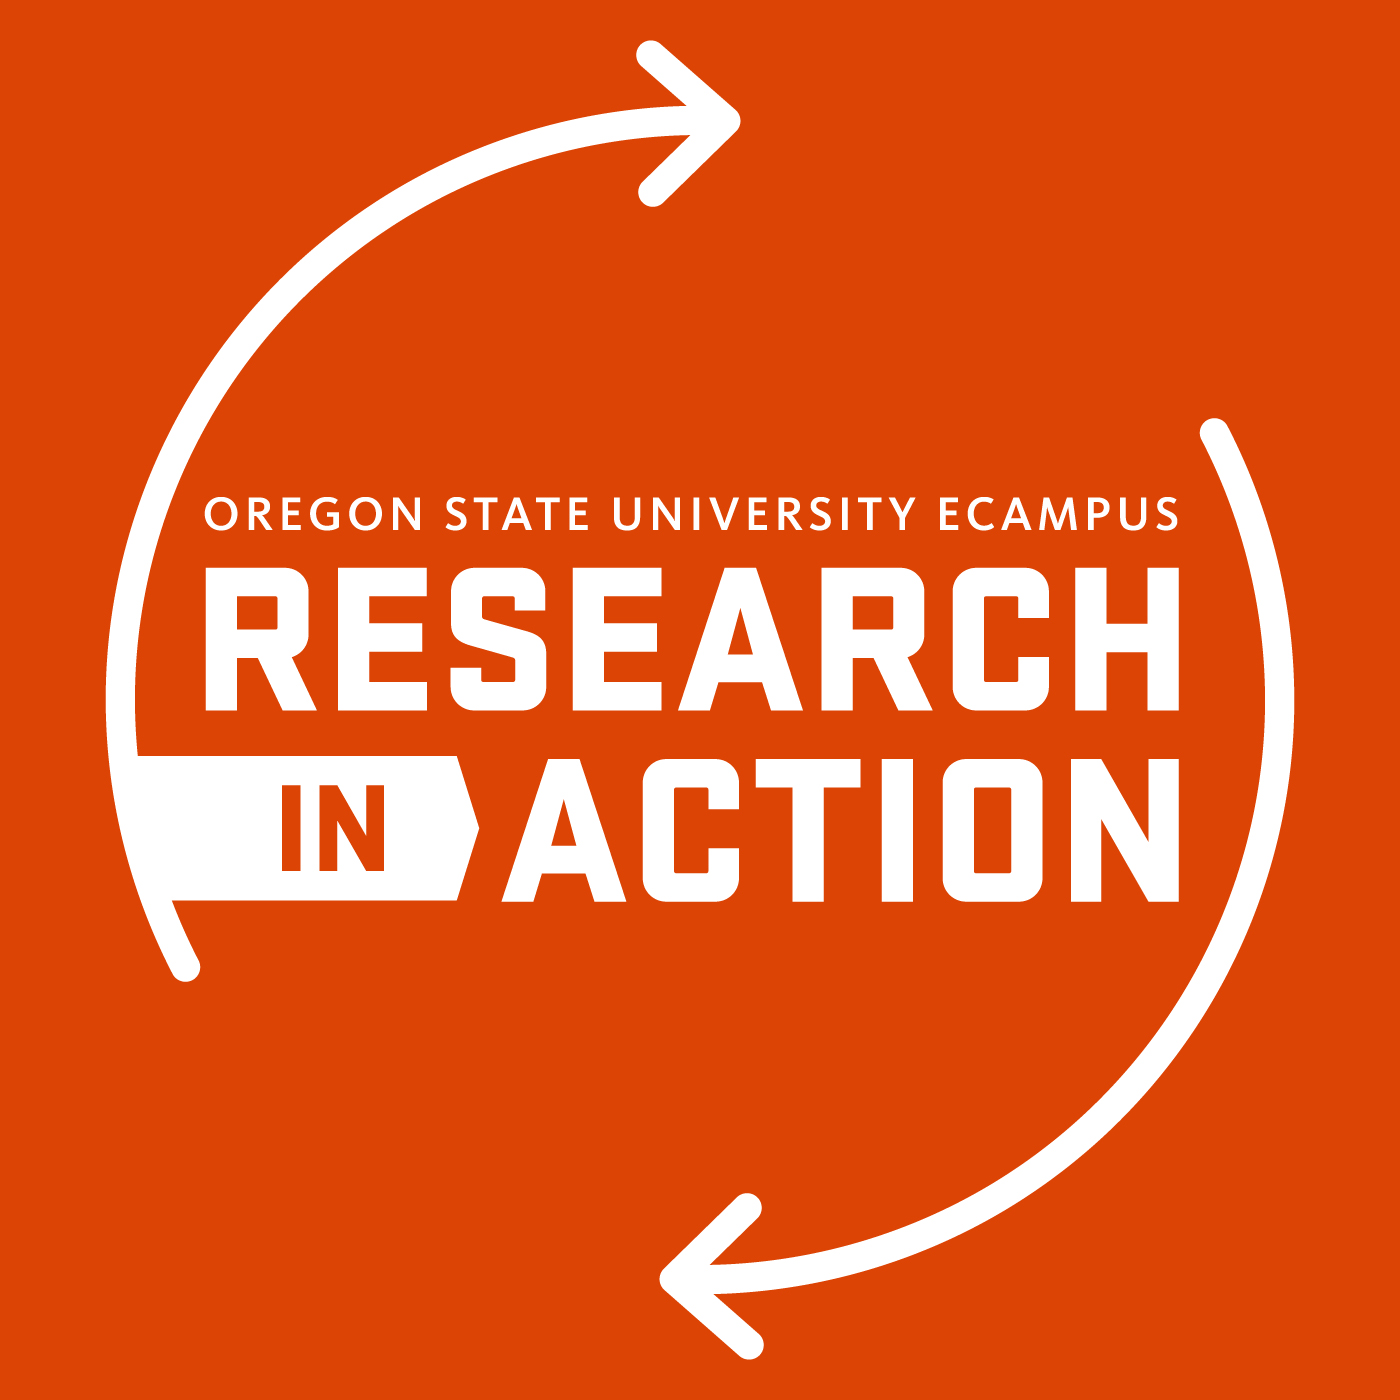 Research in Action | A podcast for faculty & higher education professionals on research design, methods, productivity & more show art